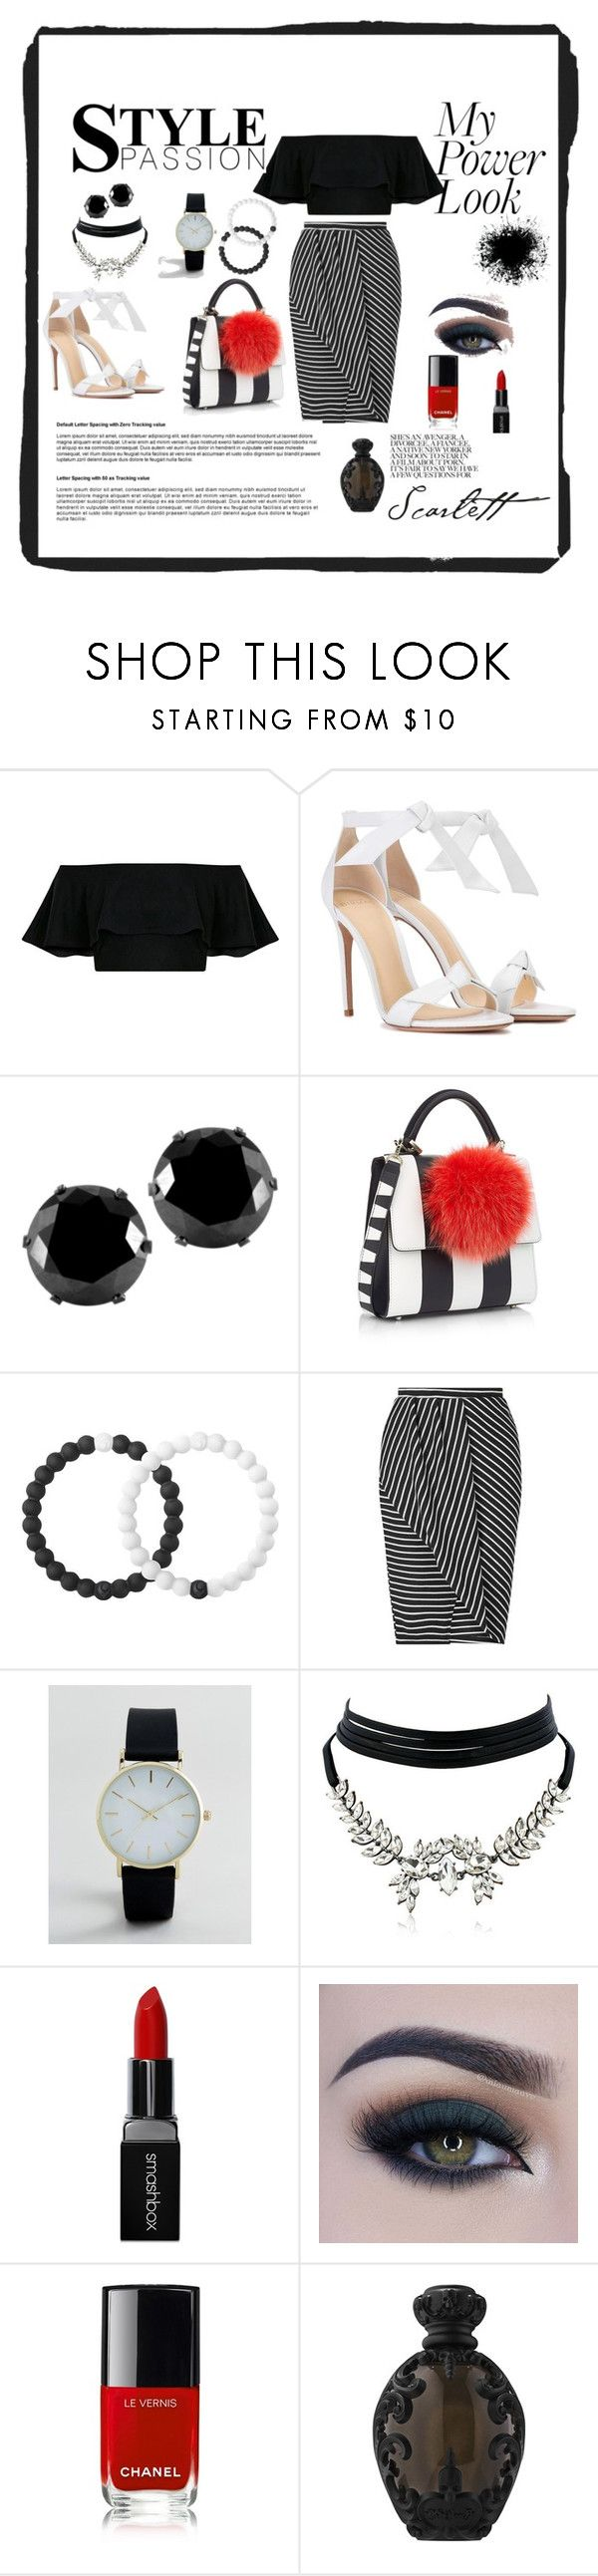 """White and black"" by husejnbasic-belma ❤ liked on Polyvore featuring Alexandre Birman, West Coast Jewelry, Les Petits Joueurs, Lokai, Miss Selfridge, WithChic, Smashbox, Too Faced Cosmetics, Chanel and Kat Von D"